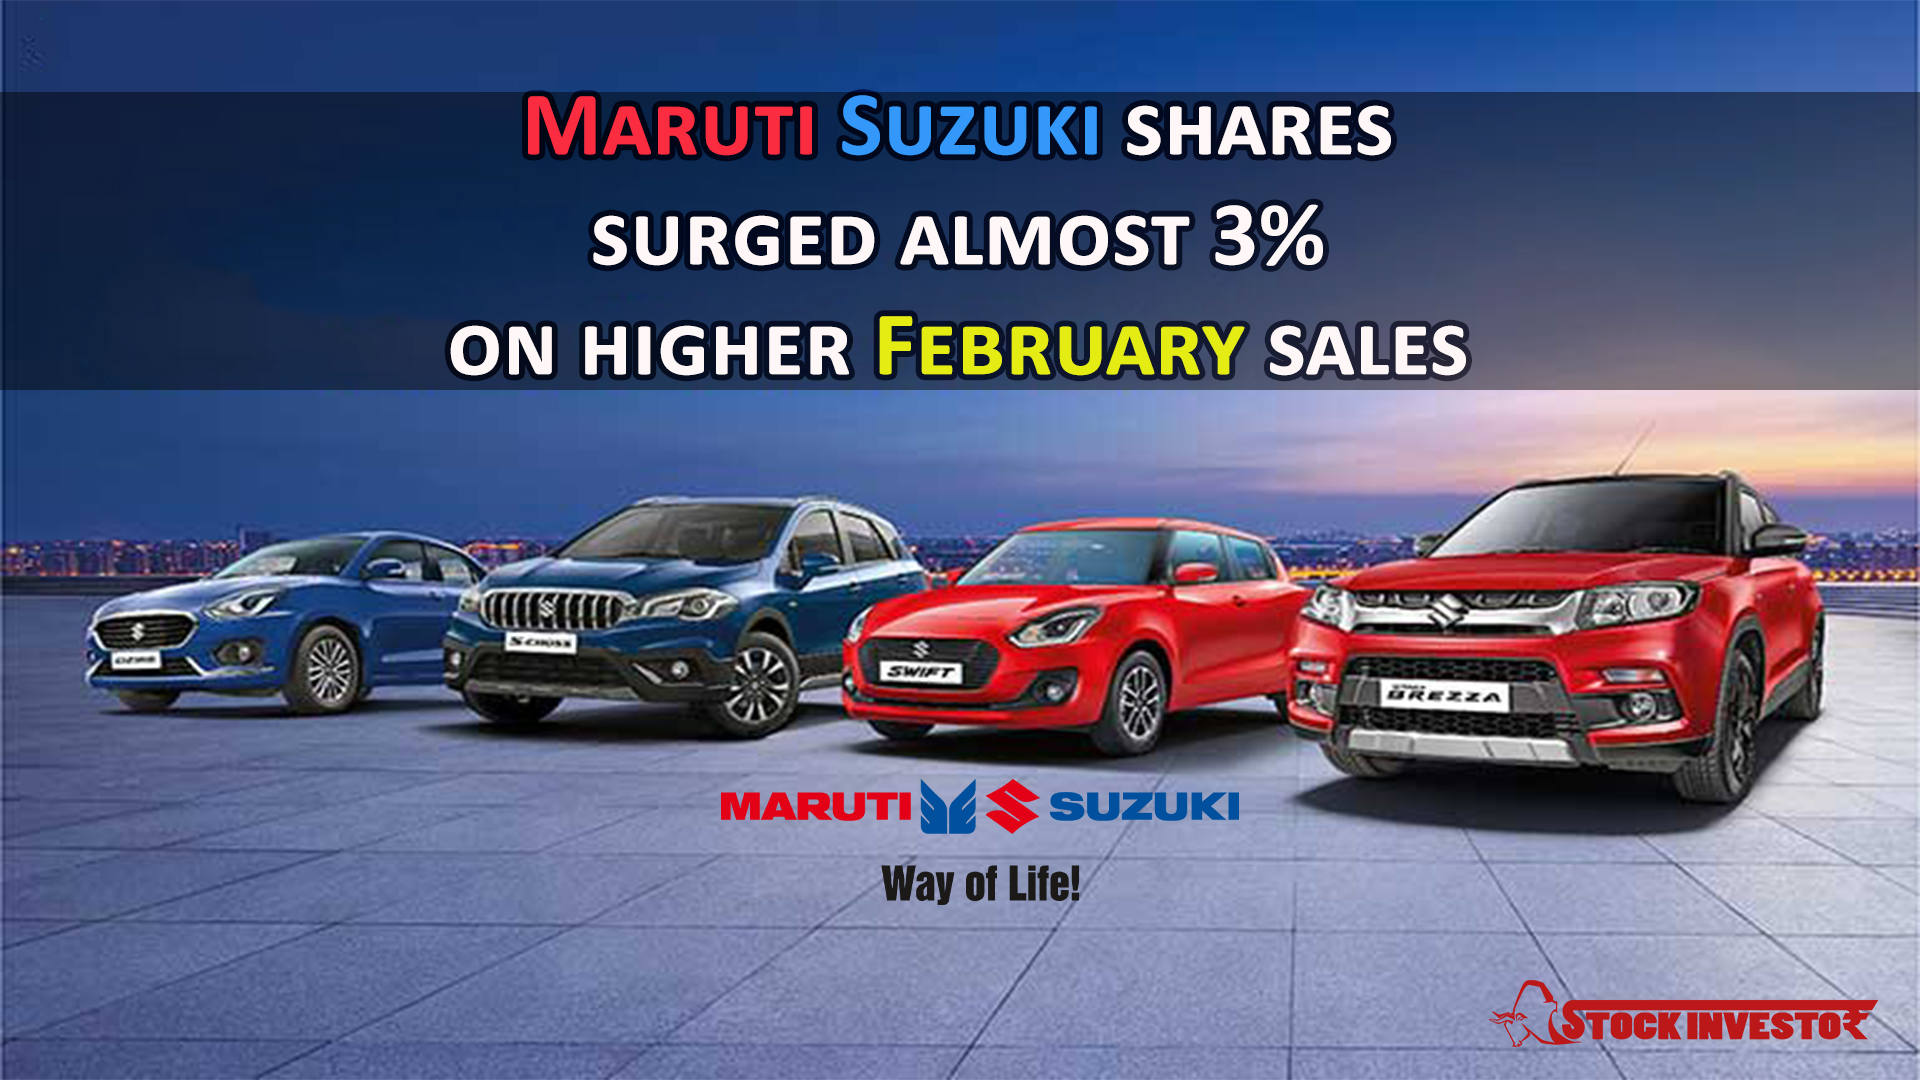 Maruti Suzuki shares surged almost 3% on higher February sales